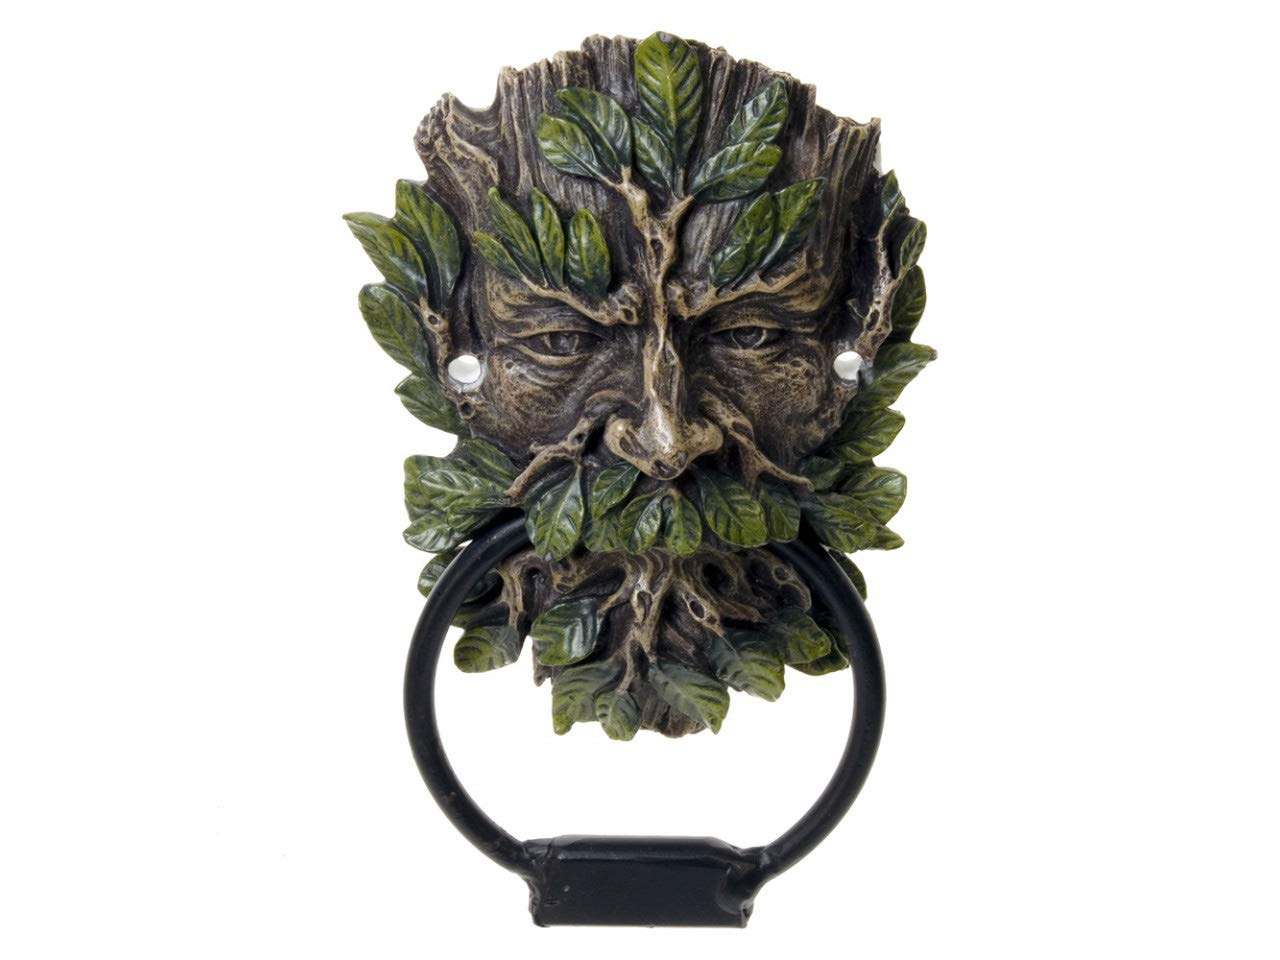 Hunky Dory Gifts Wildwood of The Forest Green Man Puerta Knocker Decoració n De Pared Tree Spirit Wiccan